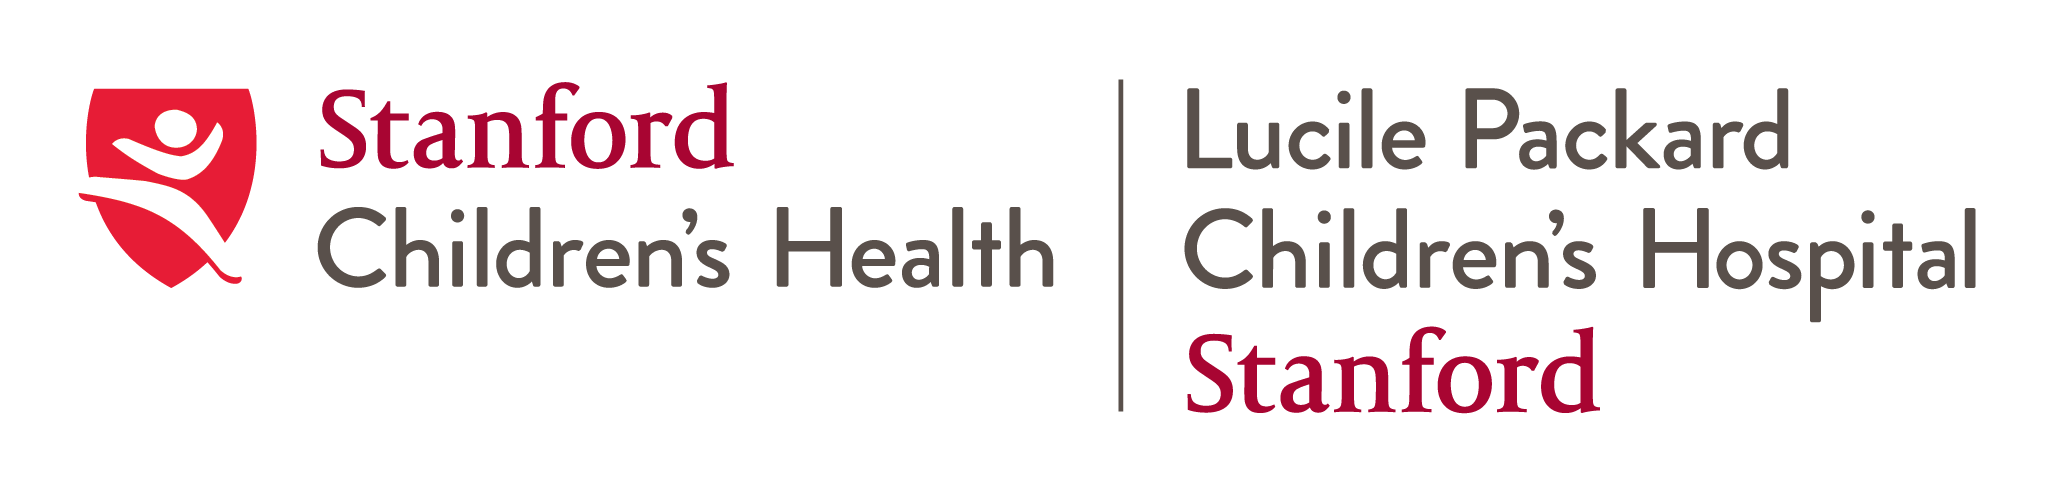 Brand Guidelines and Logos - Stanford Children's Health